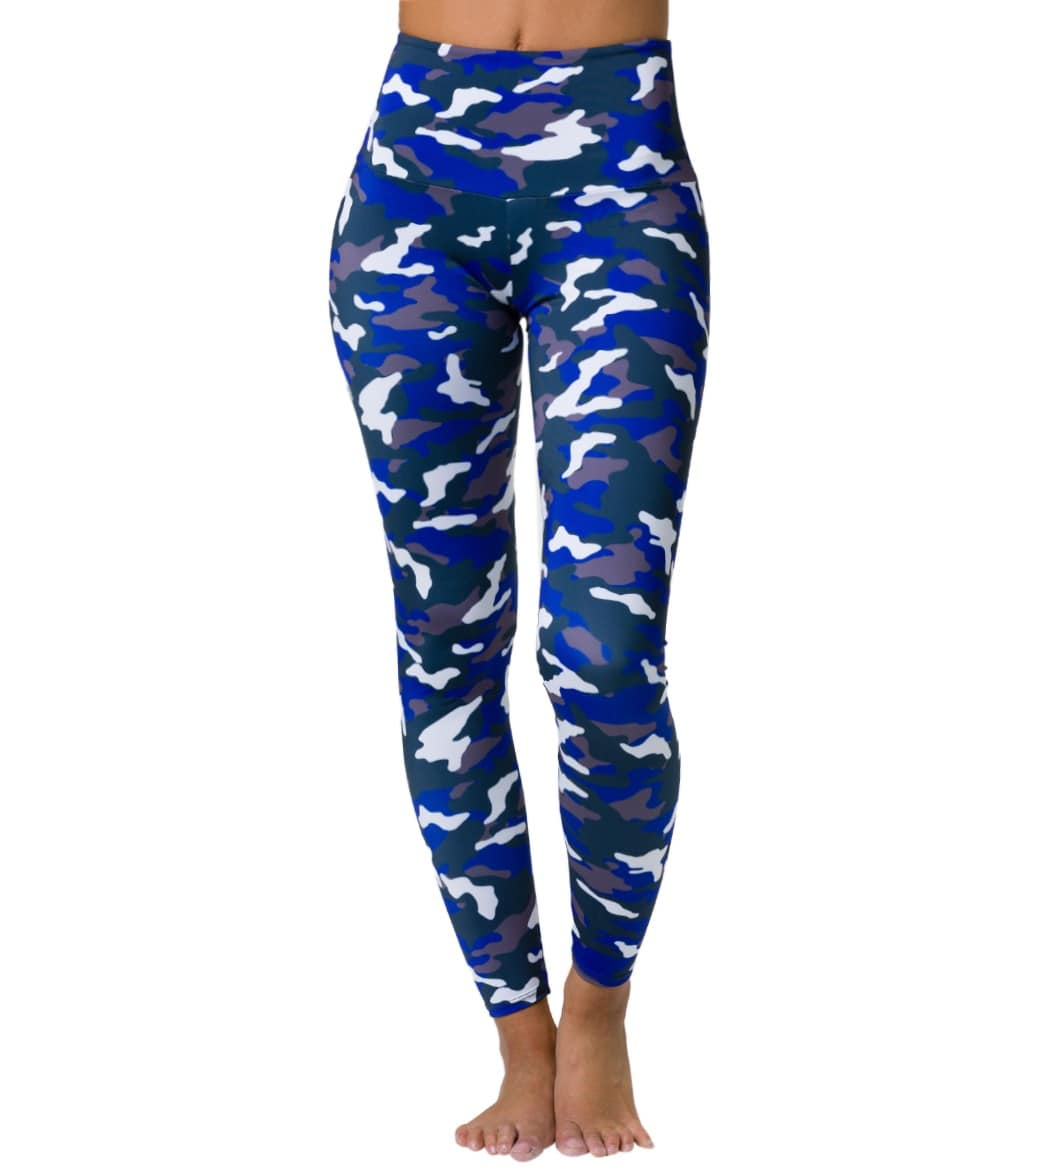 0f4141e8a9d094 Onzie High Waisted Yoga Leggings at SwimOutlet.com - Free Shipping